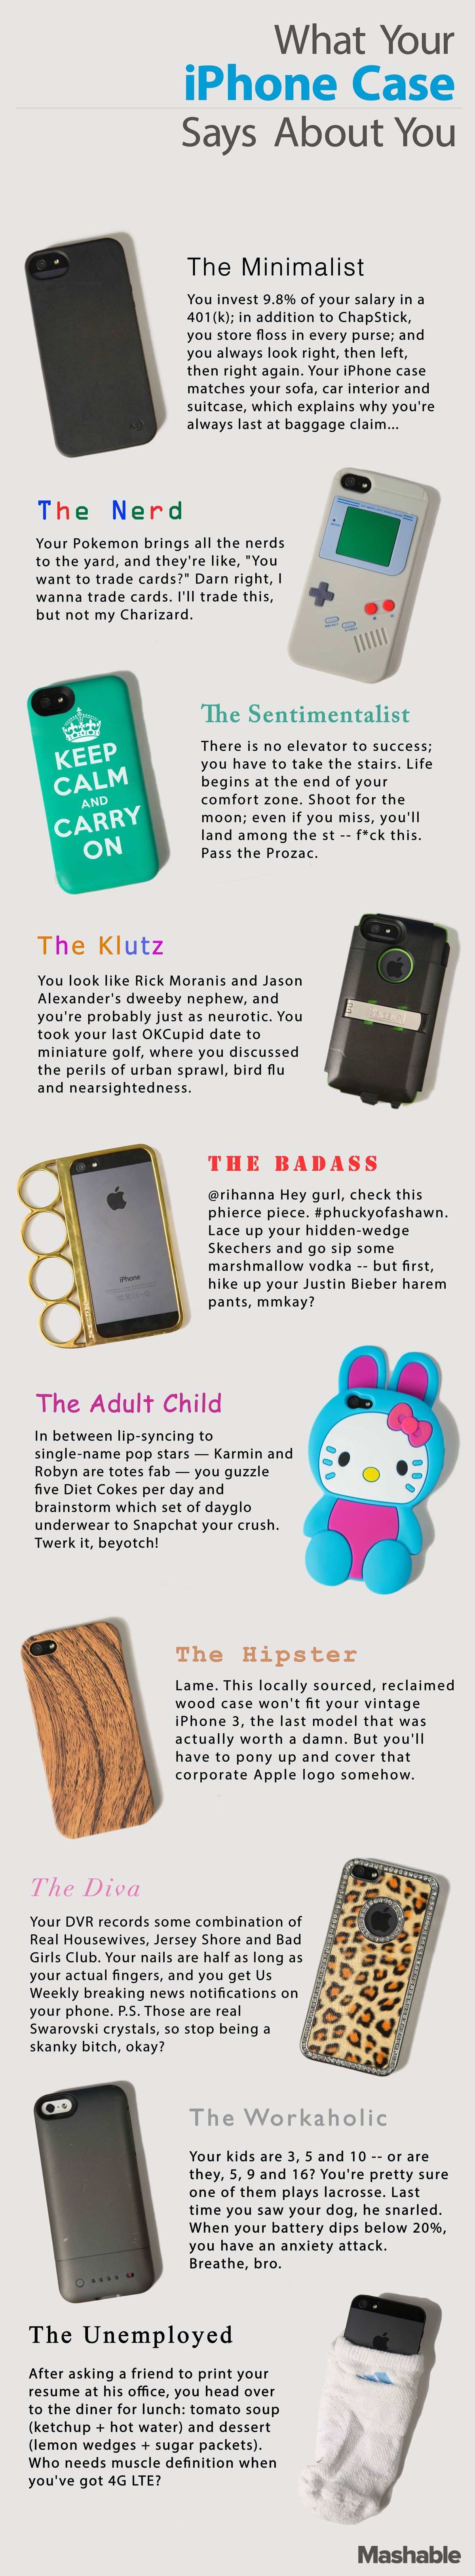 What your iPhone cases says about you infographic